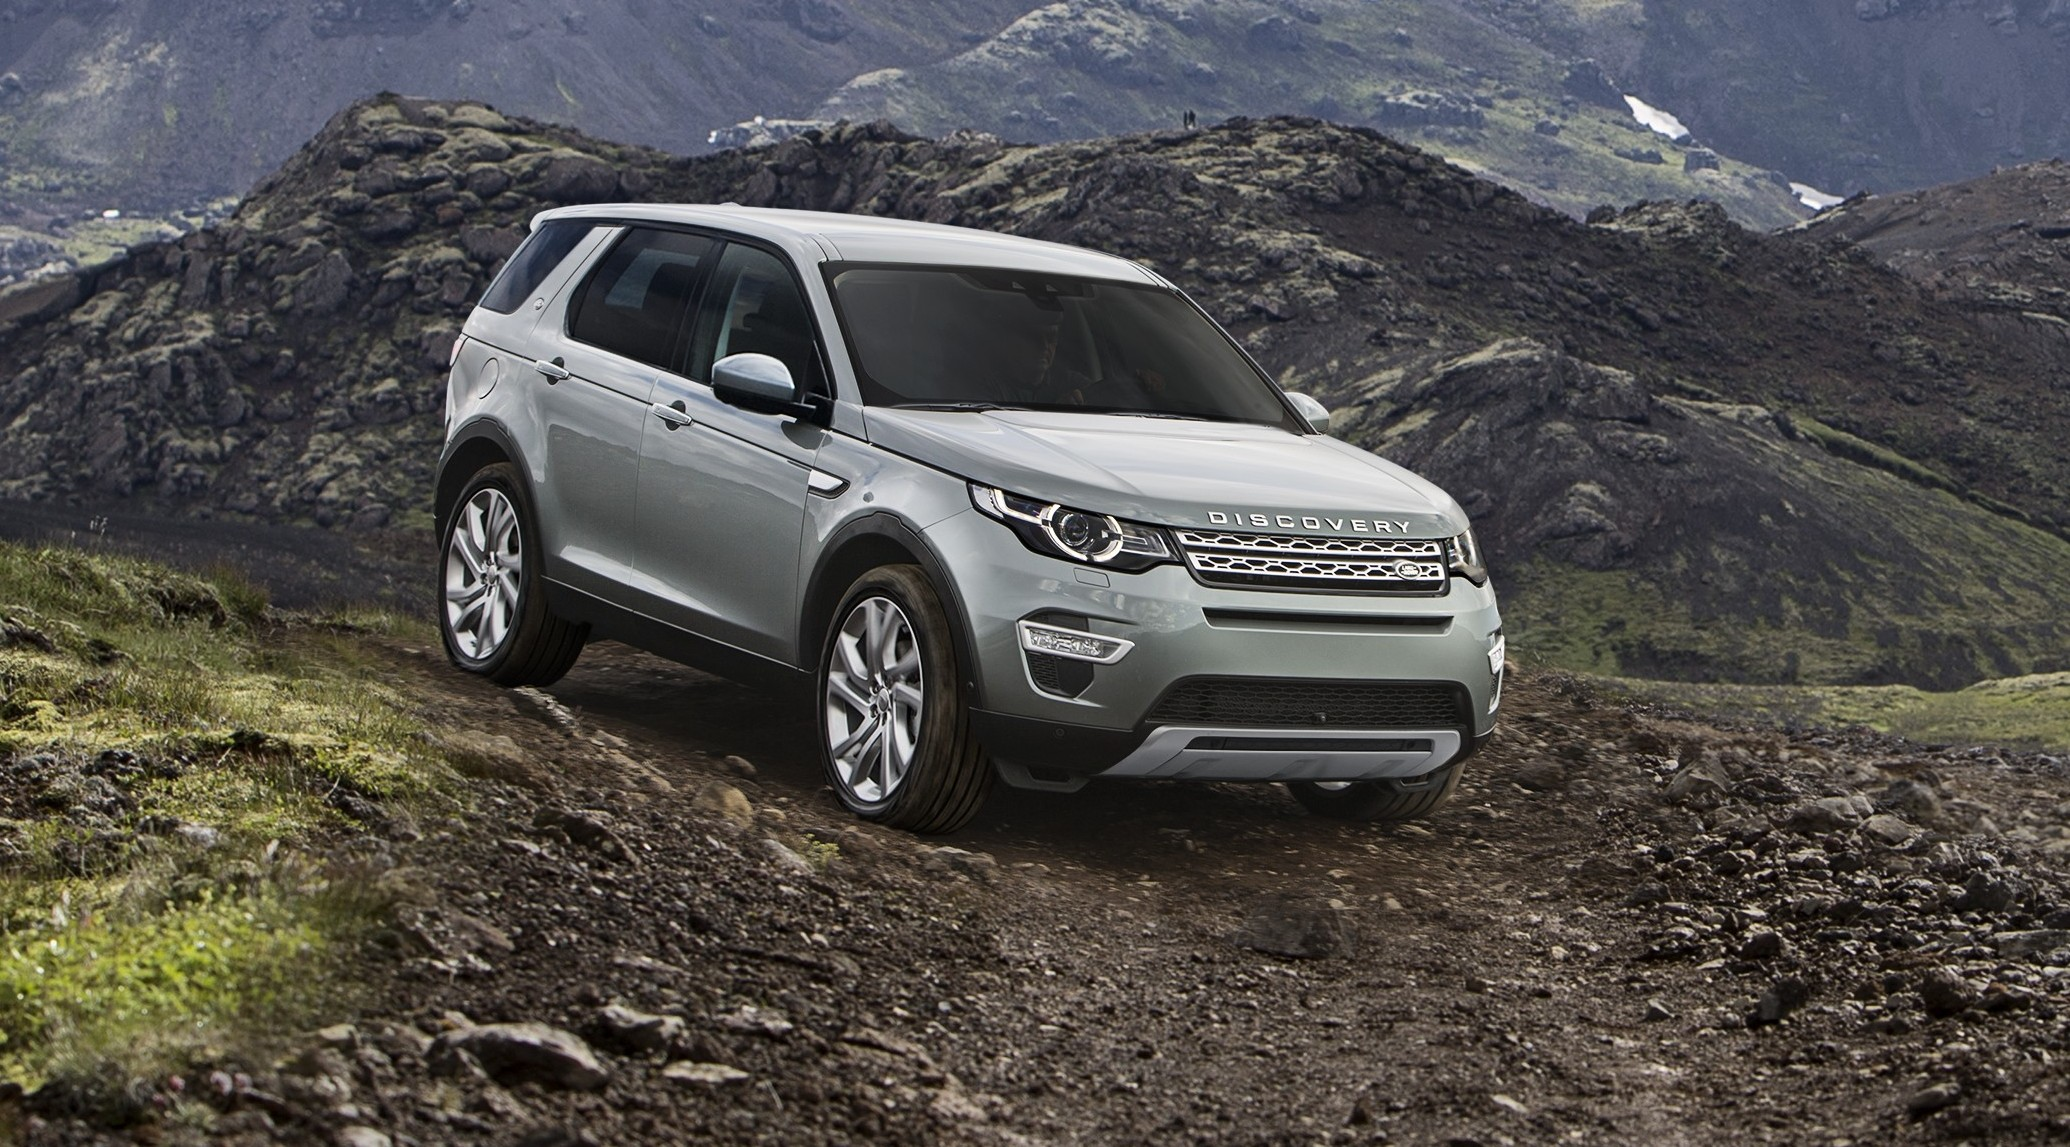 land rover discovery sport 7 seat small suv debuts image 268311. Black Bedroom Furniture Sets. Home Design Ideas